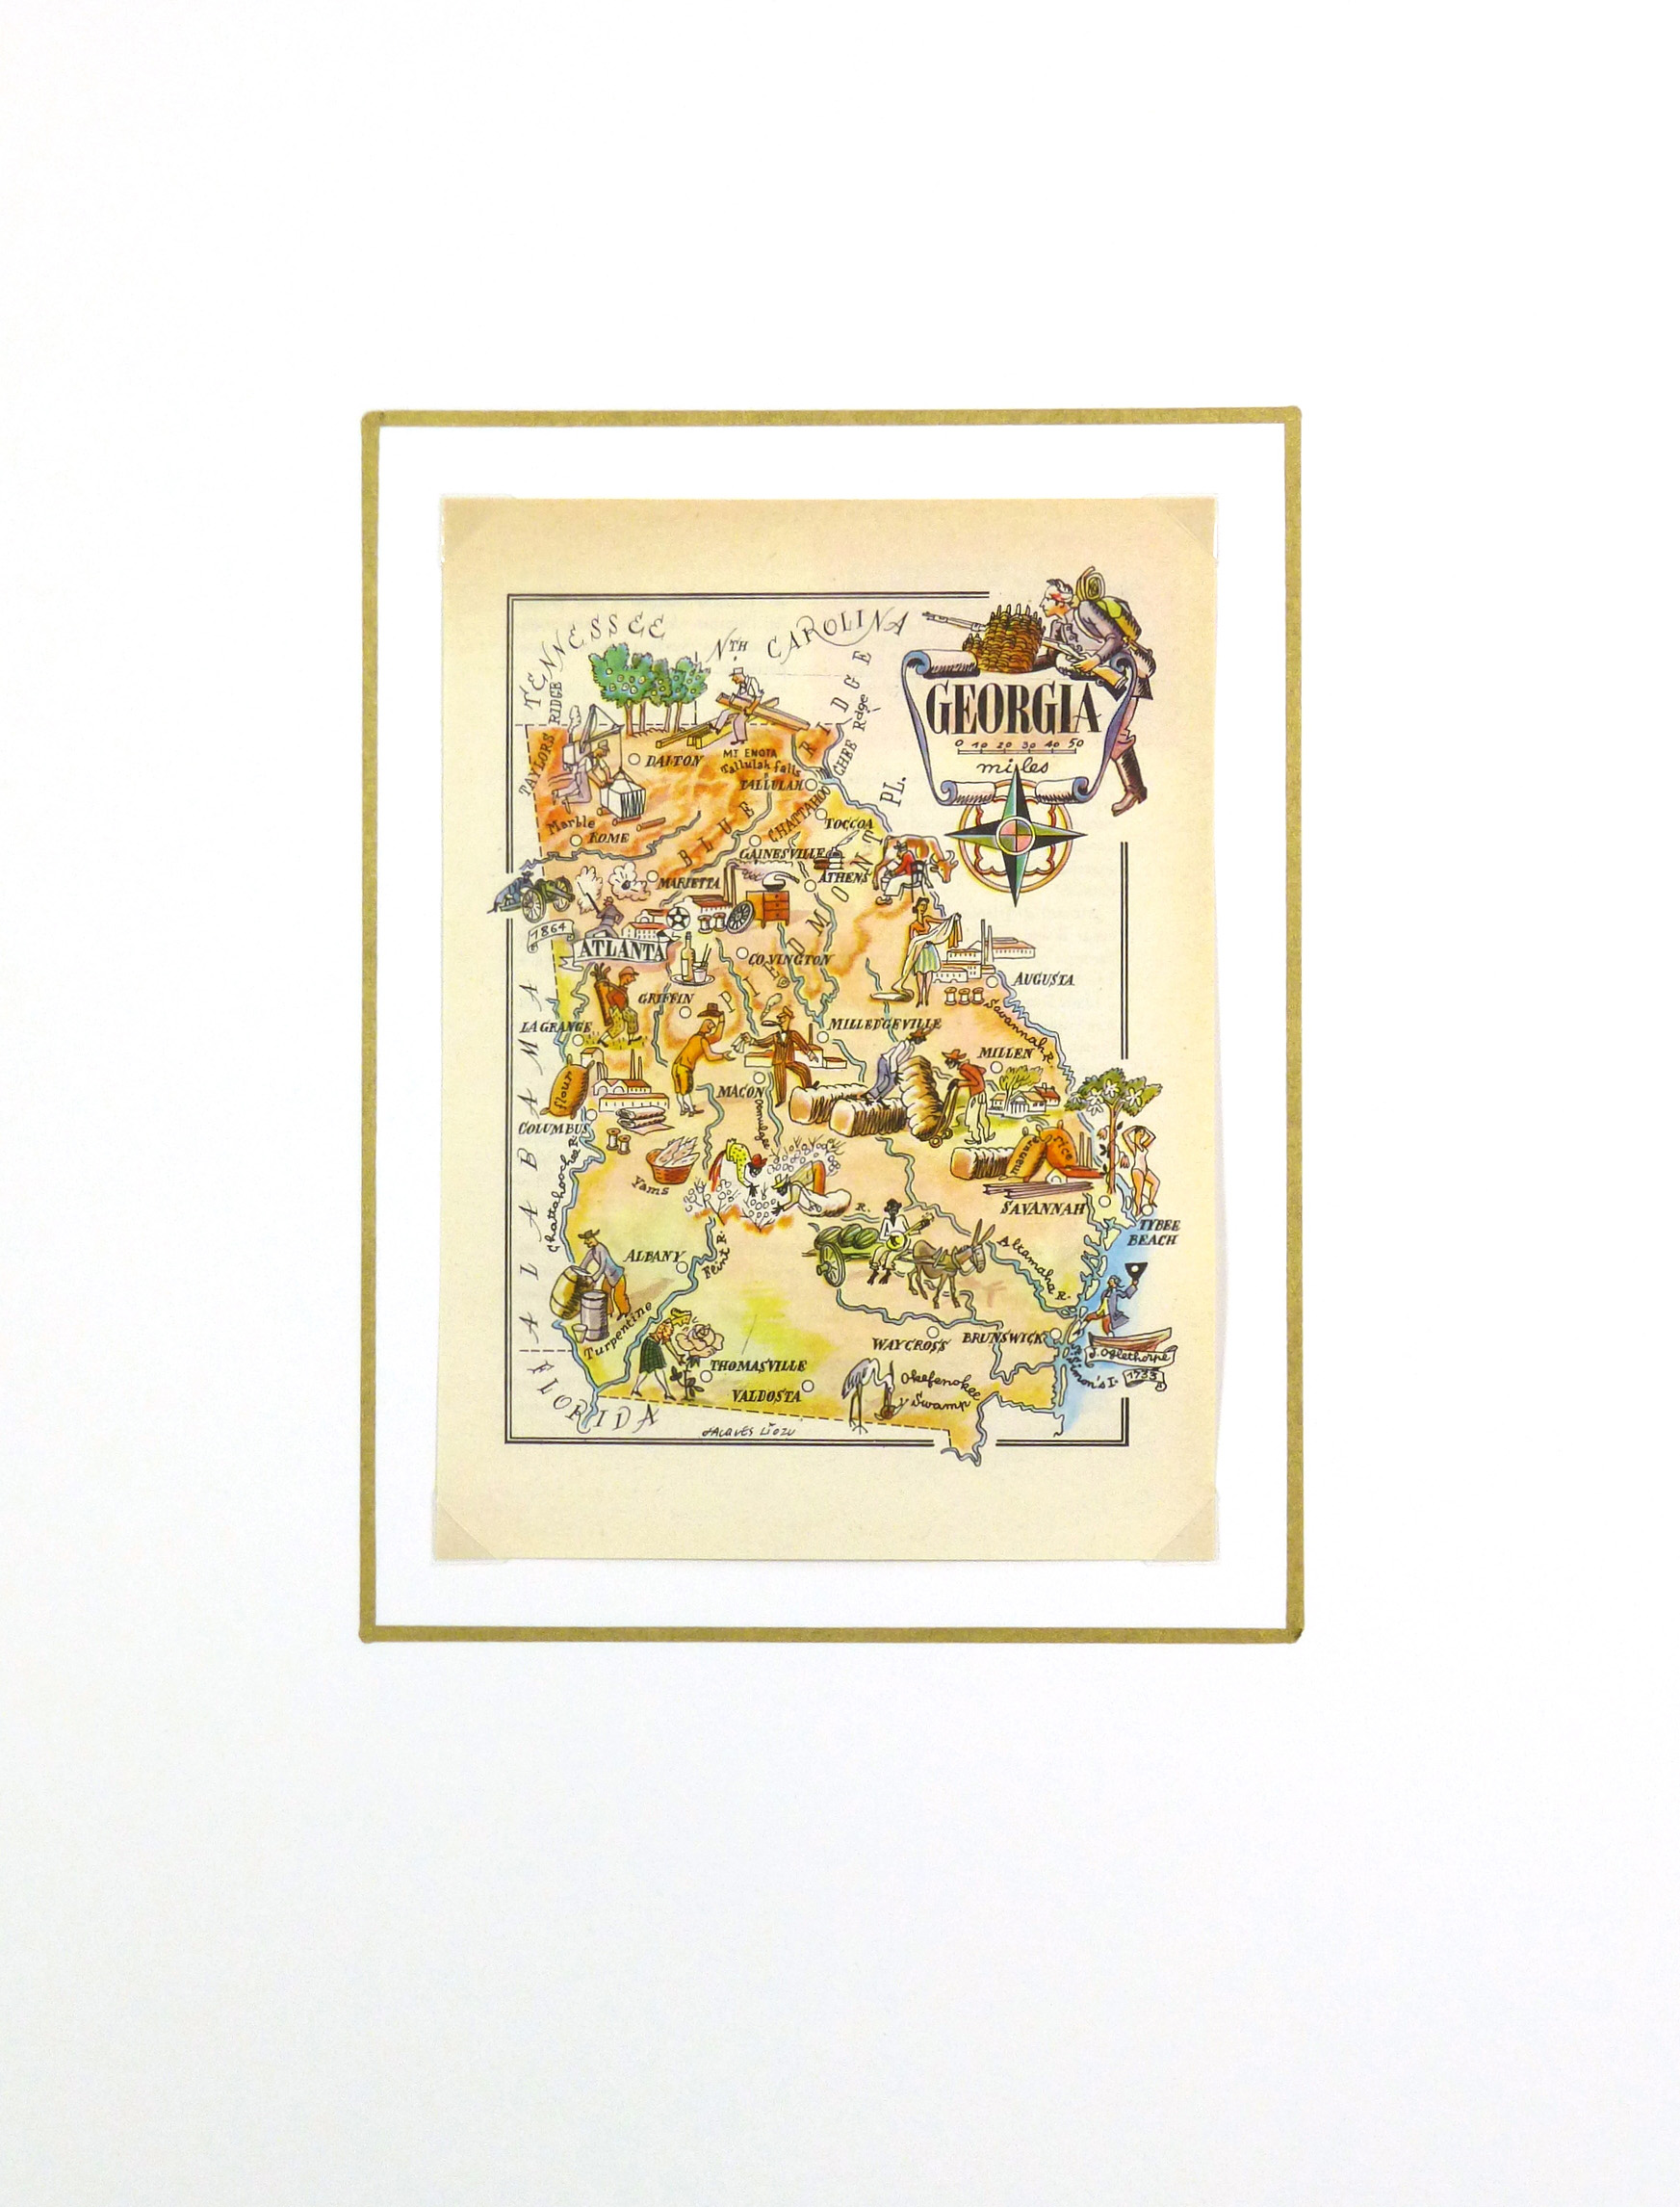 Pictorial Map - Georgia, 1946-matted-6254K